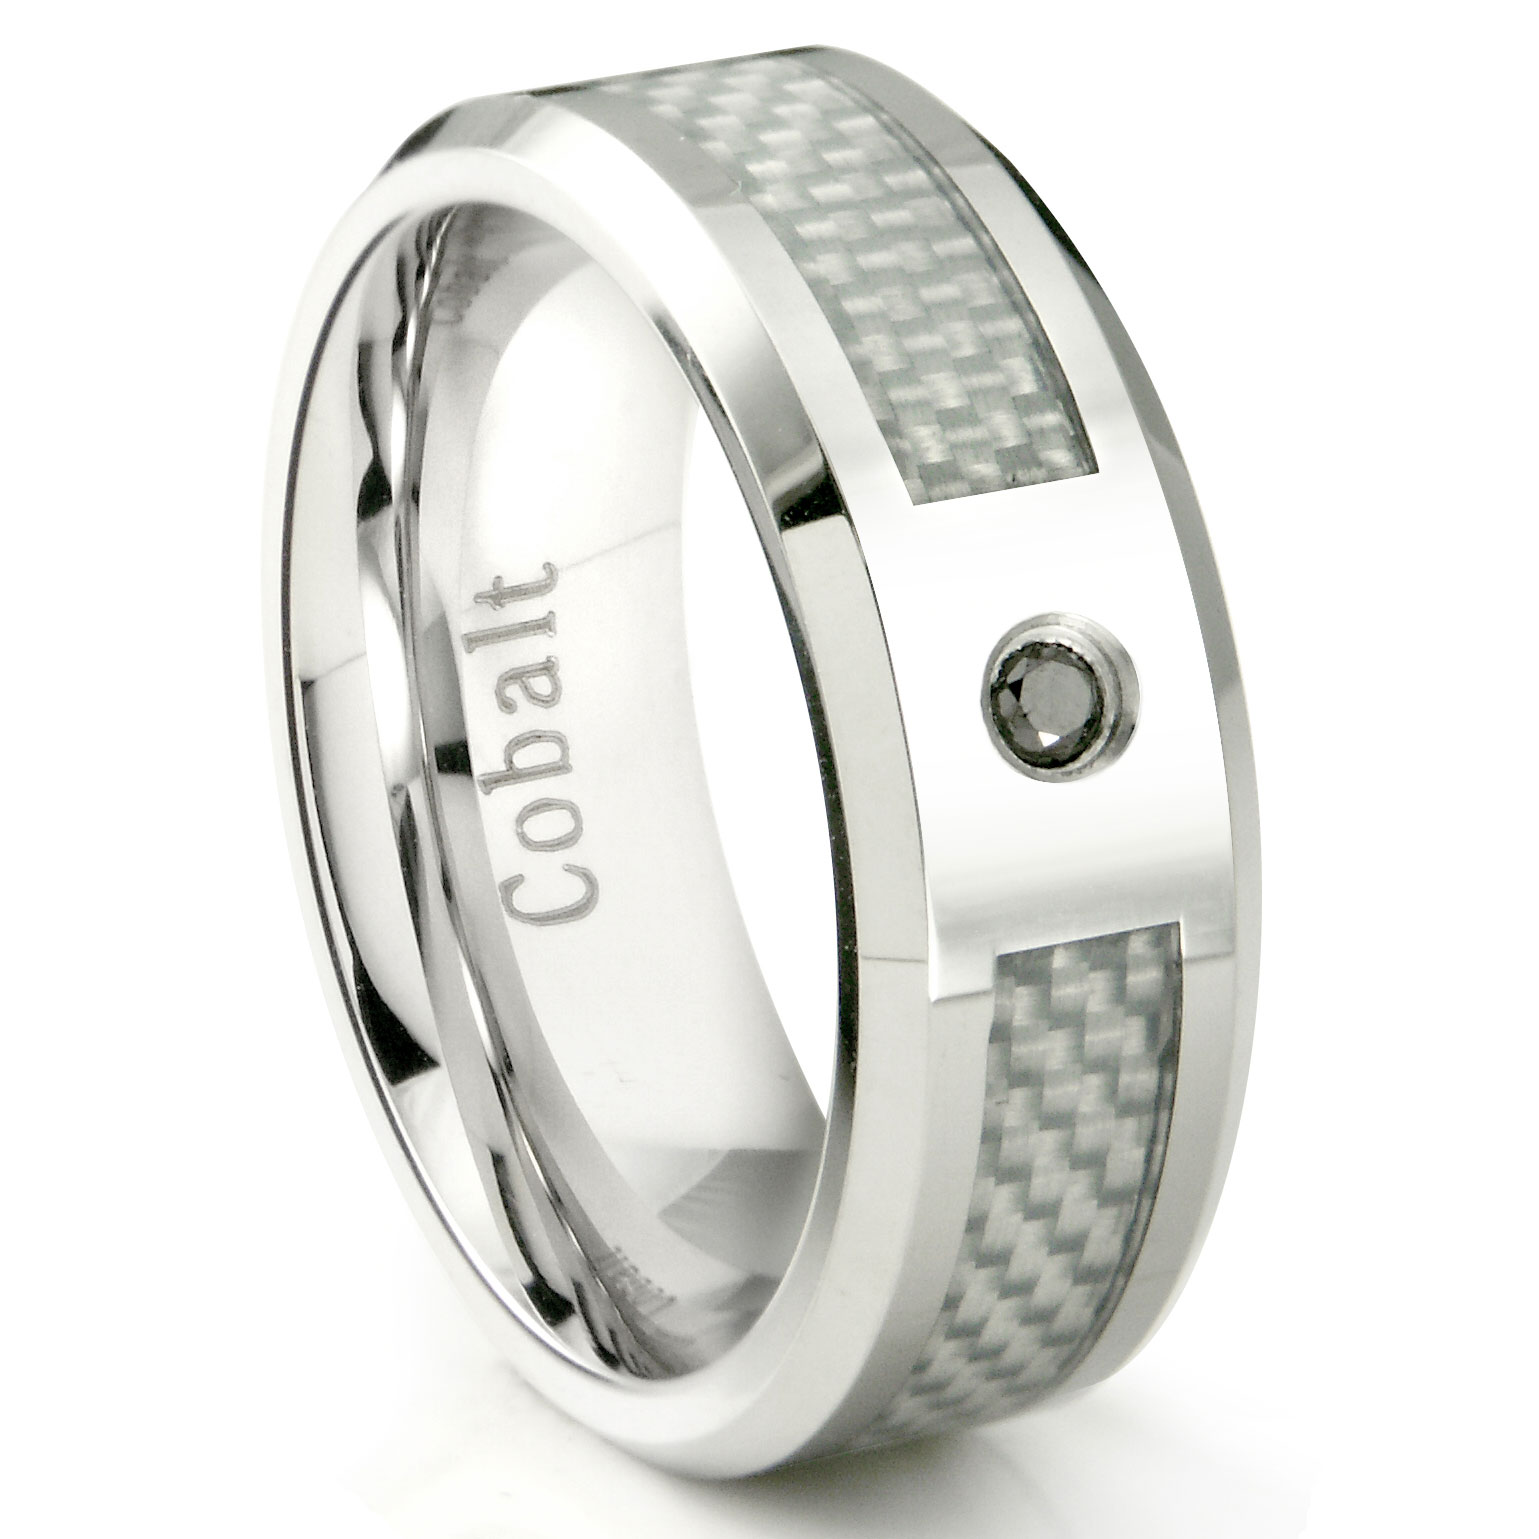 bands jewelers wide collections chrome rings with wedding customized cobalt mens fingerprint band mullen